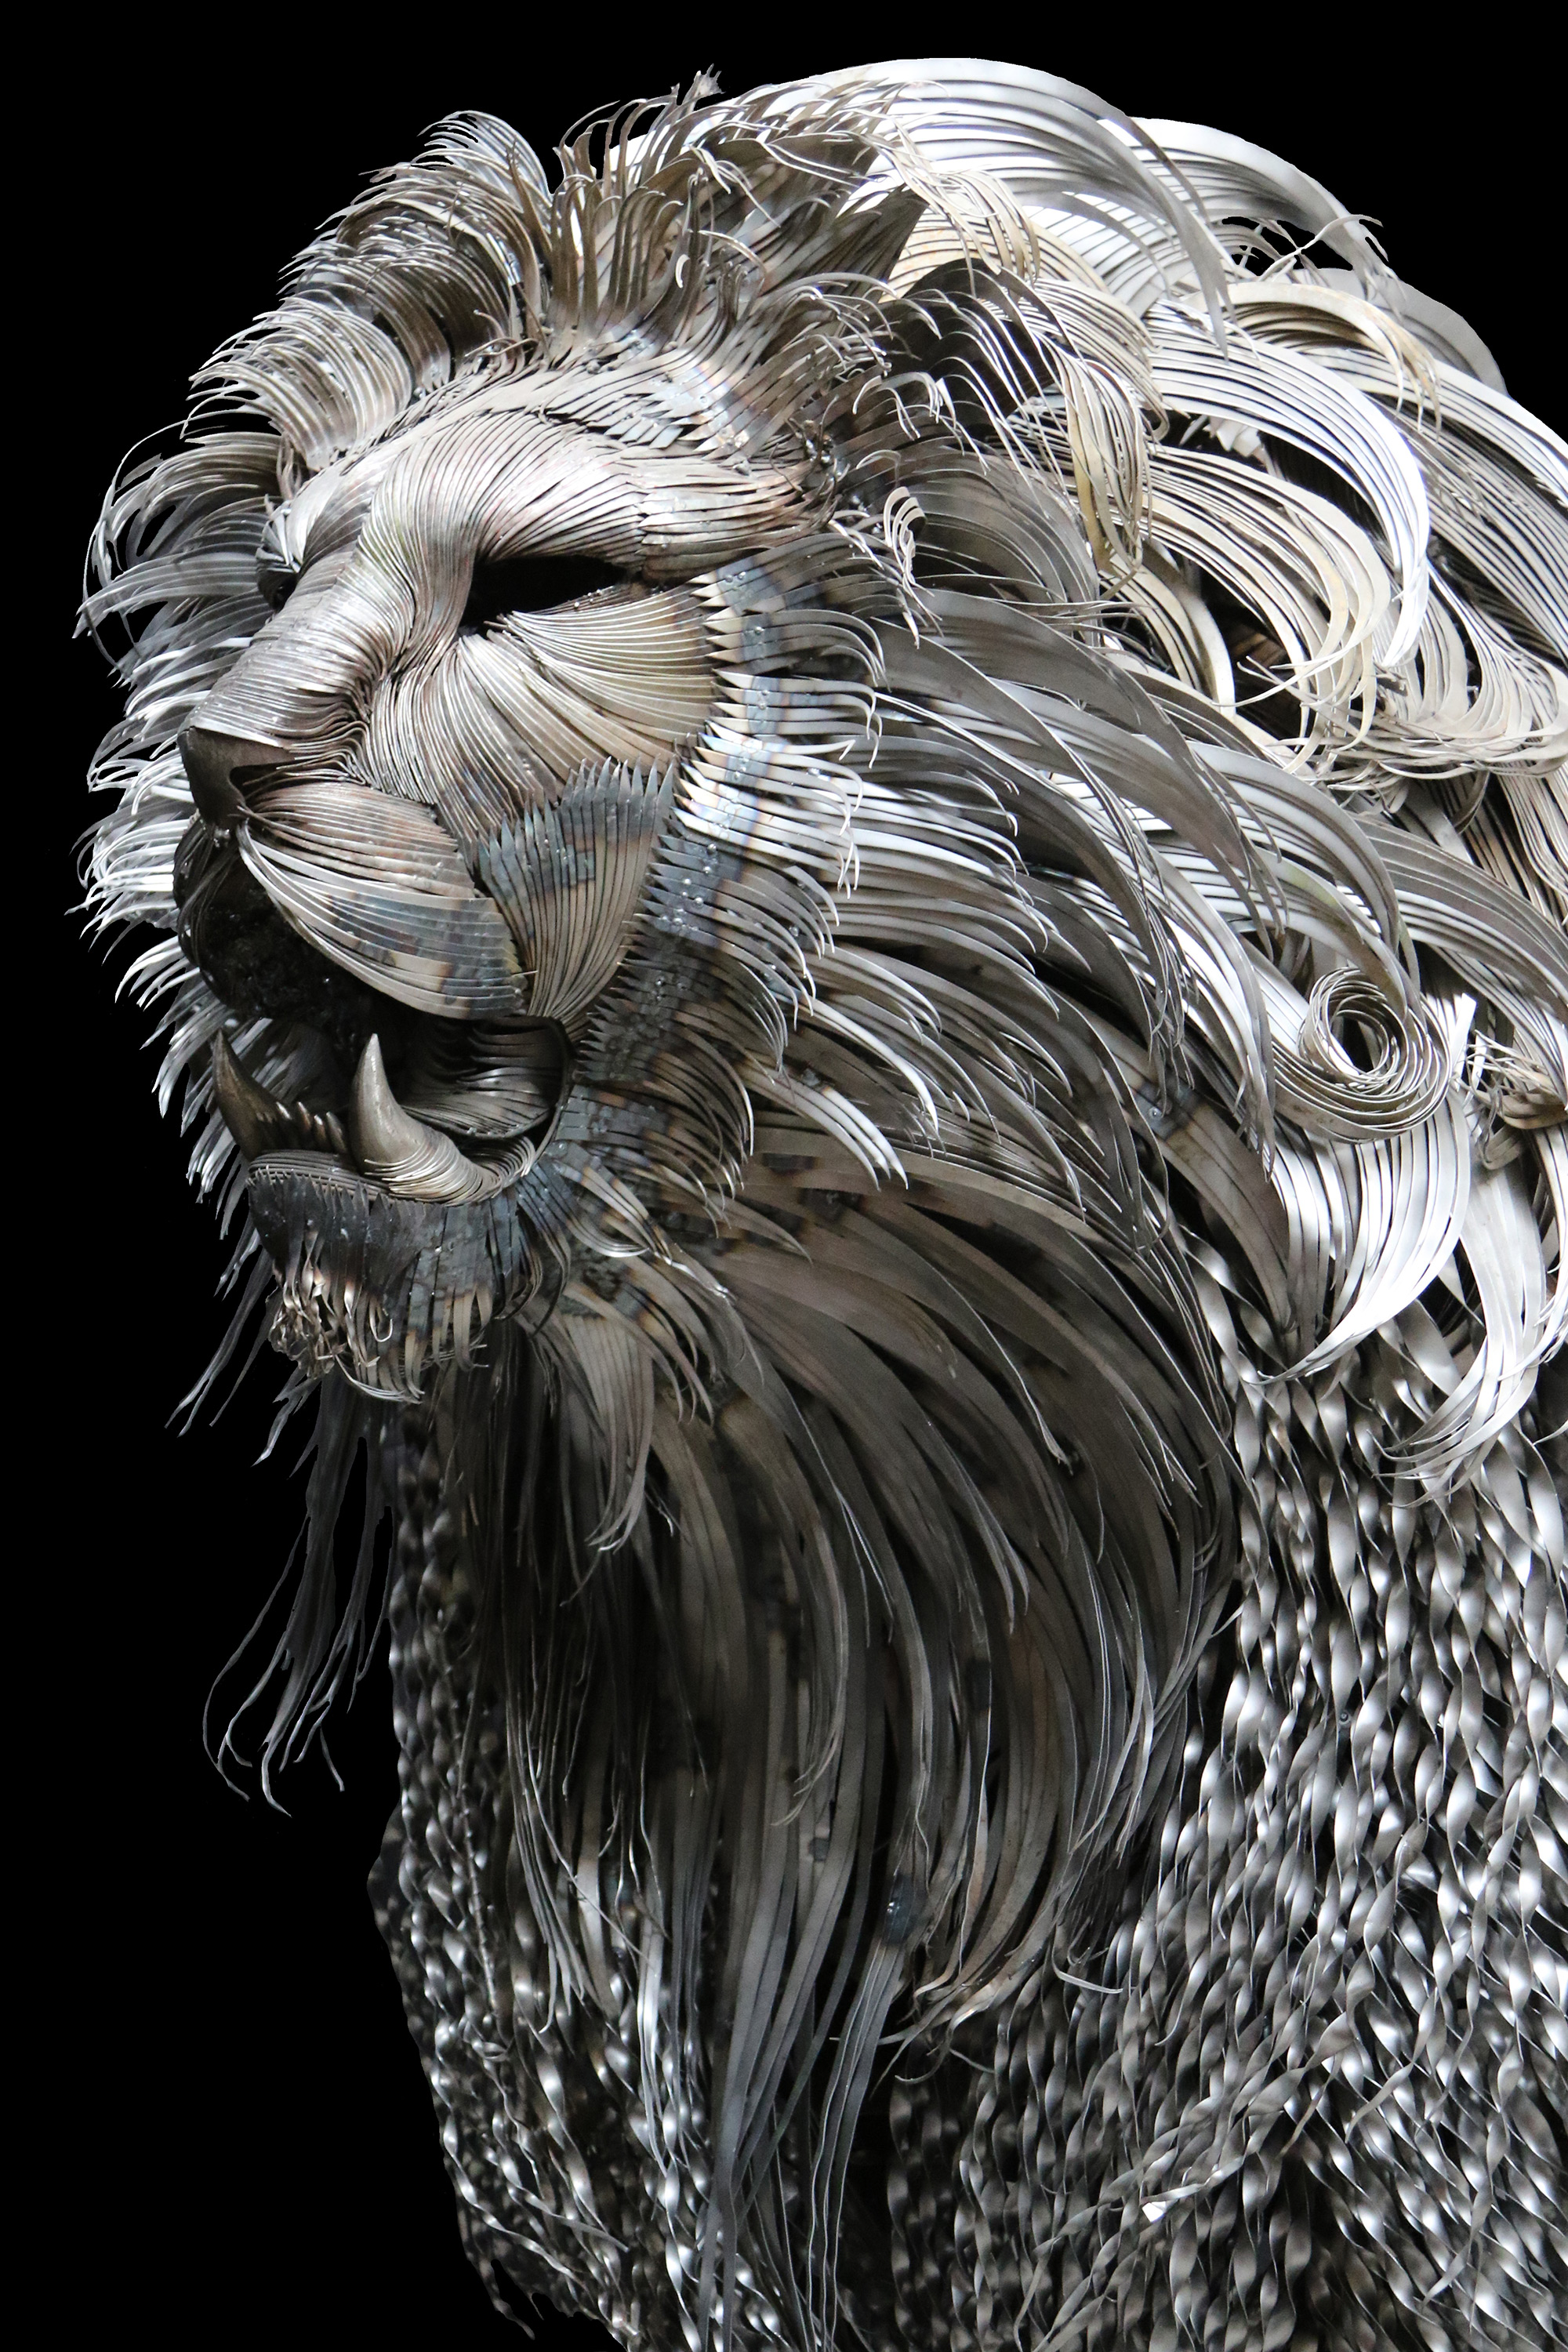 A Towering Hammered Steel Lion by Selcuk Y?lmaz (4 pics)